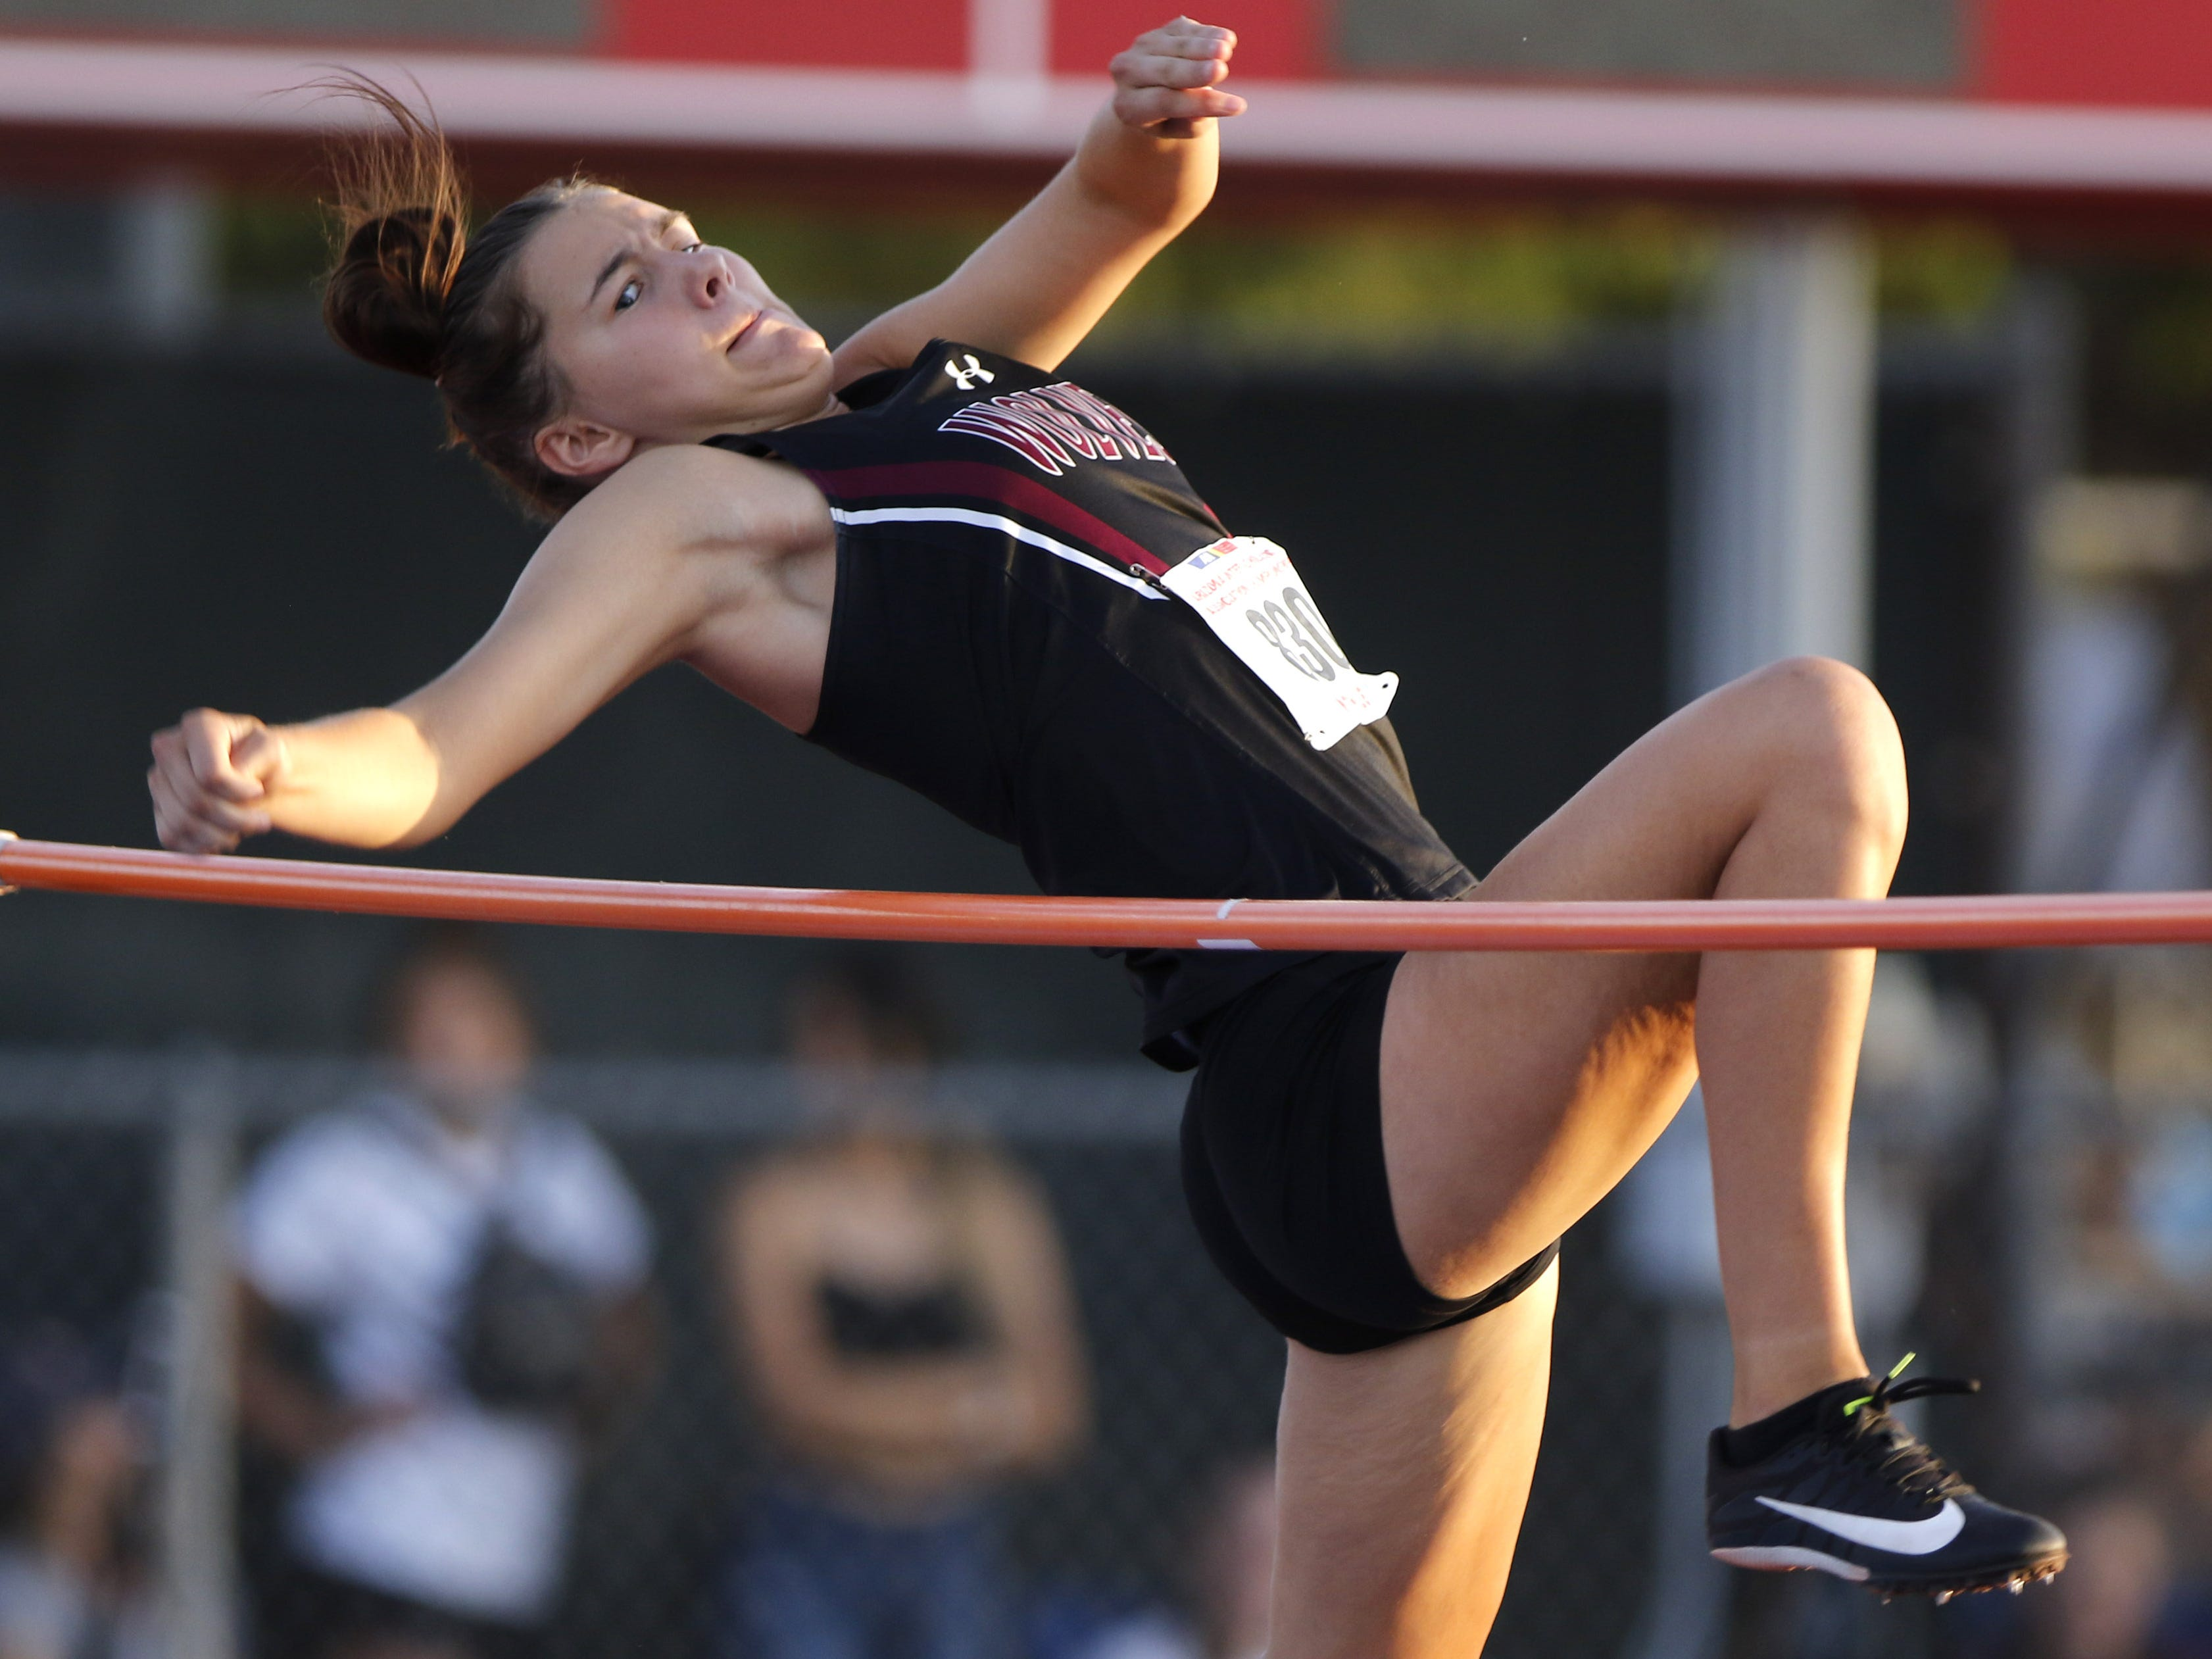 Desert Mountian's Olivia LeBlanc eyes the bars during the Division II high jump championship during the 2019 Arizona State Track and Field Championship at Mesa Community College in Mesa, Arizona, May 04, 2019.